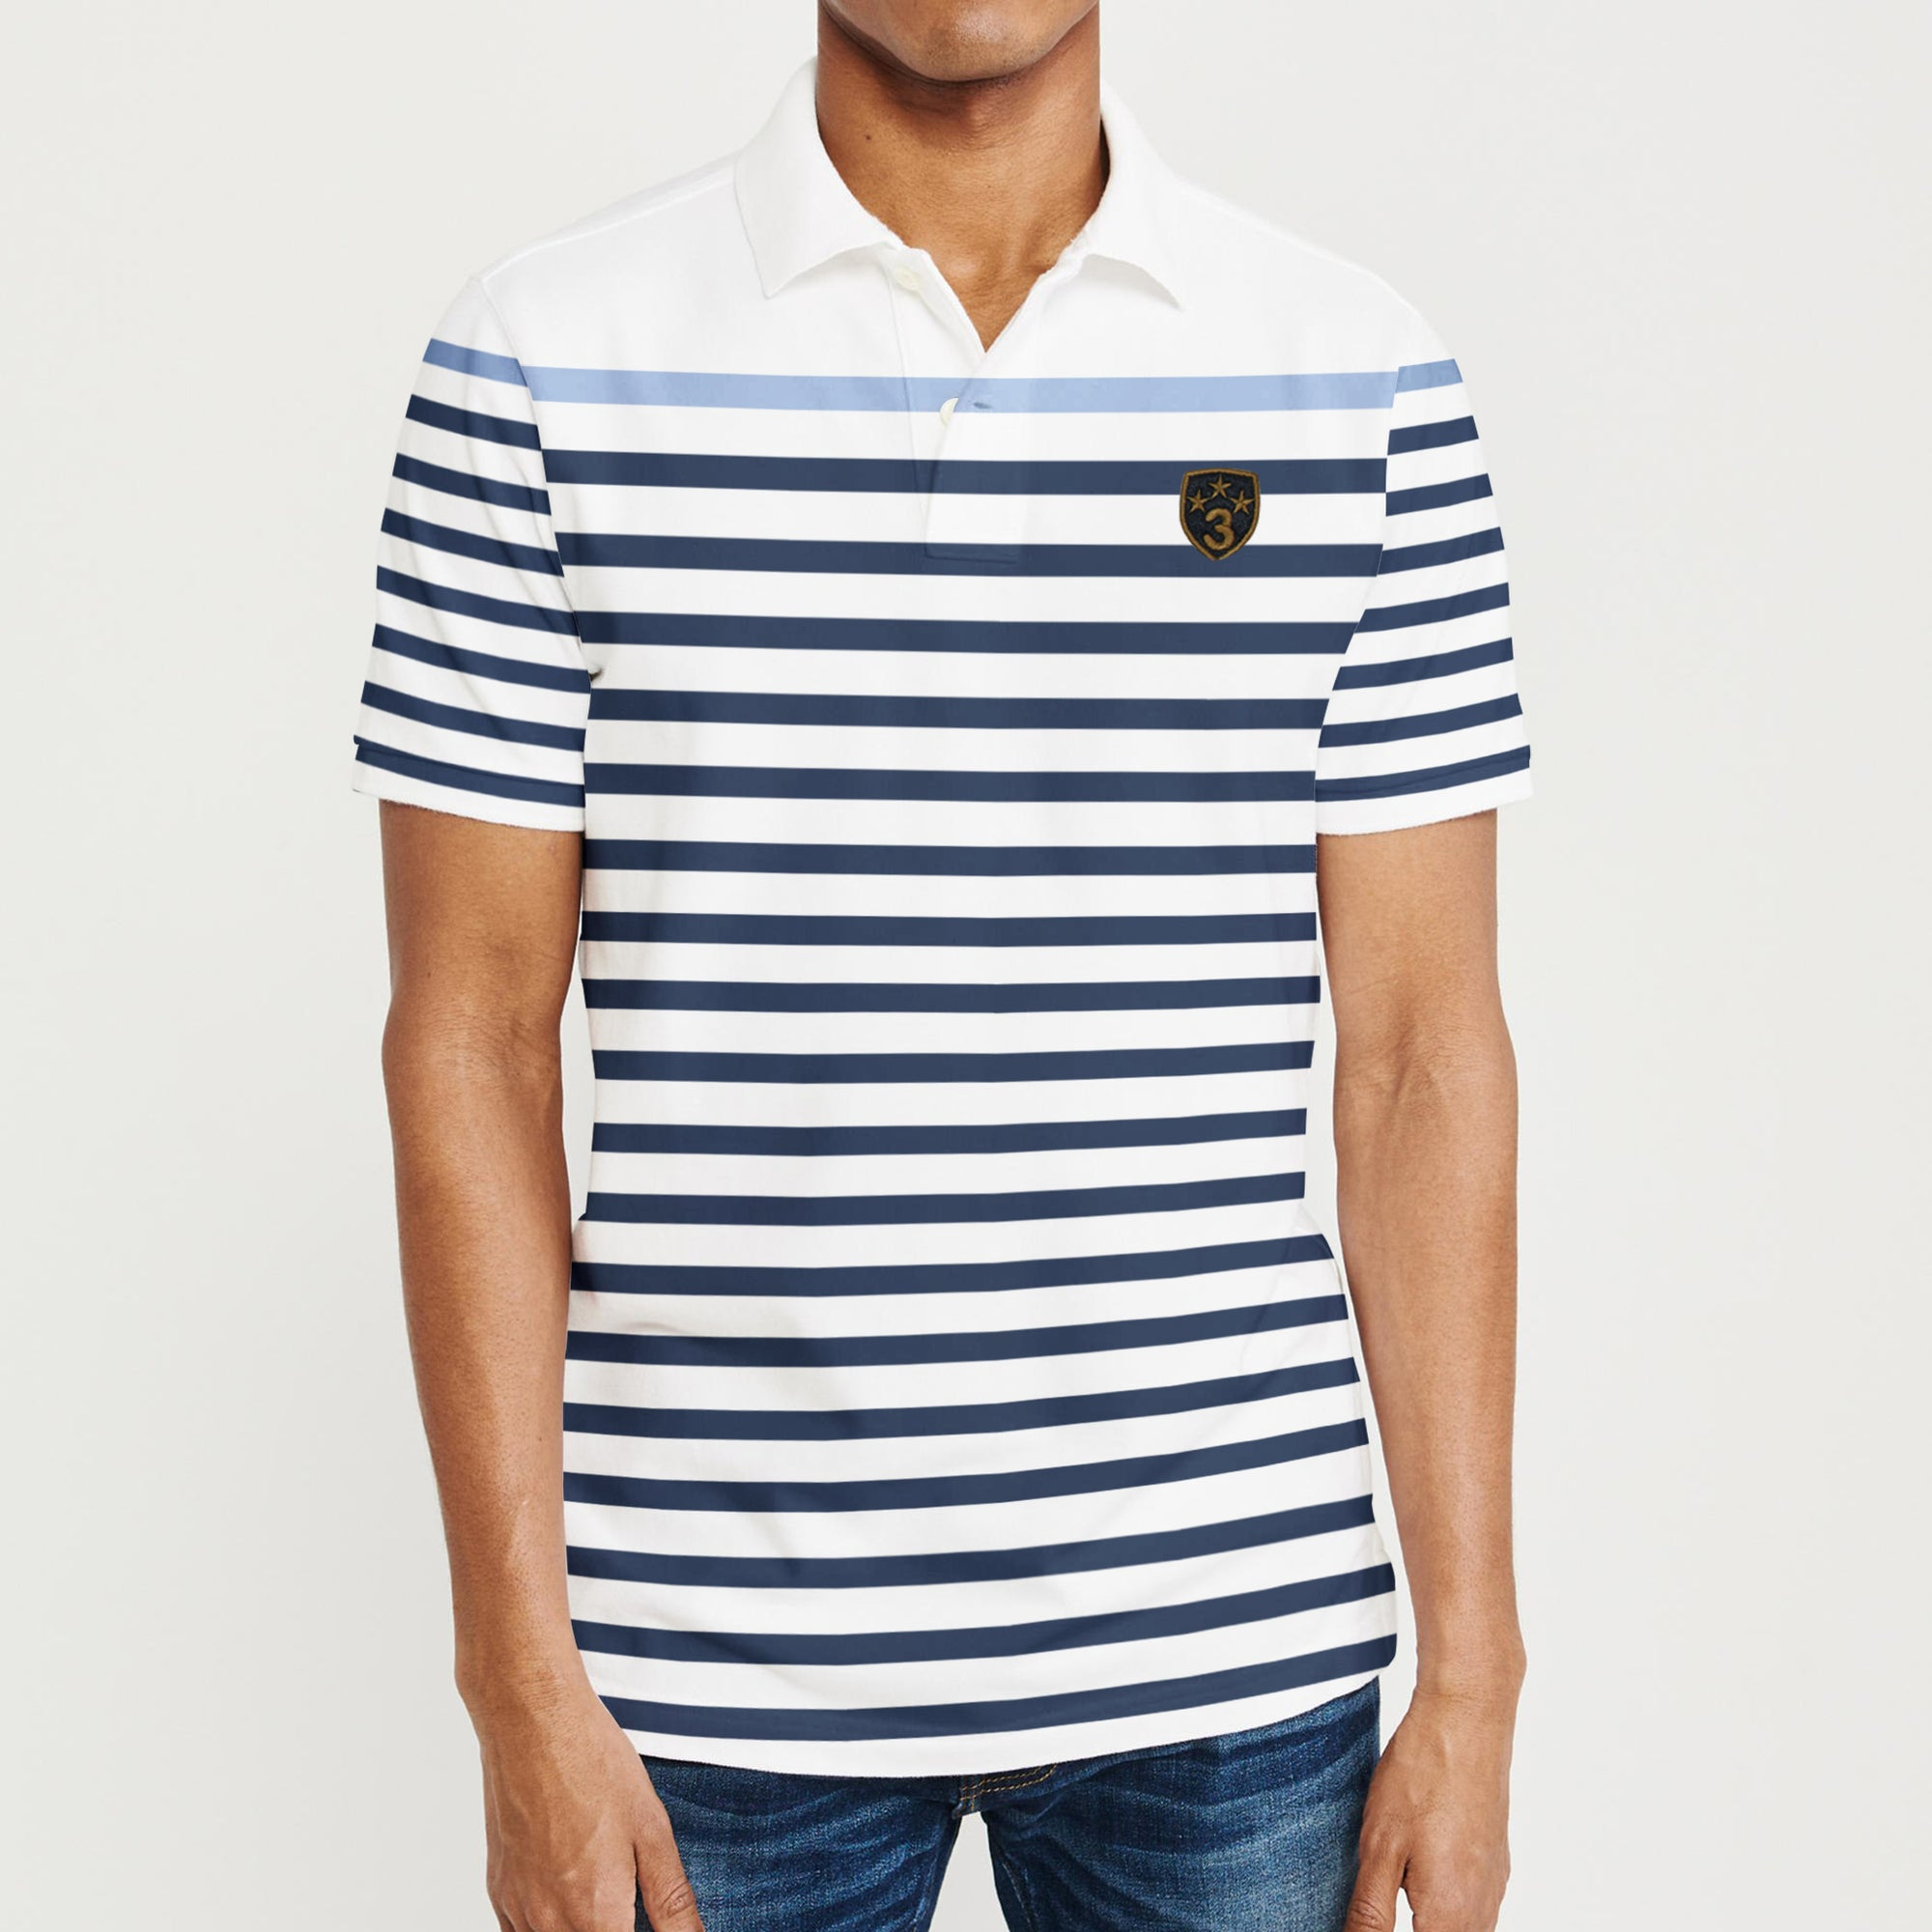 brandsego - Banana Republic Short Sleeve P.Q Polo Shirt For Men-White with Stripe-BE8349